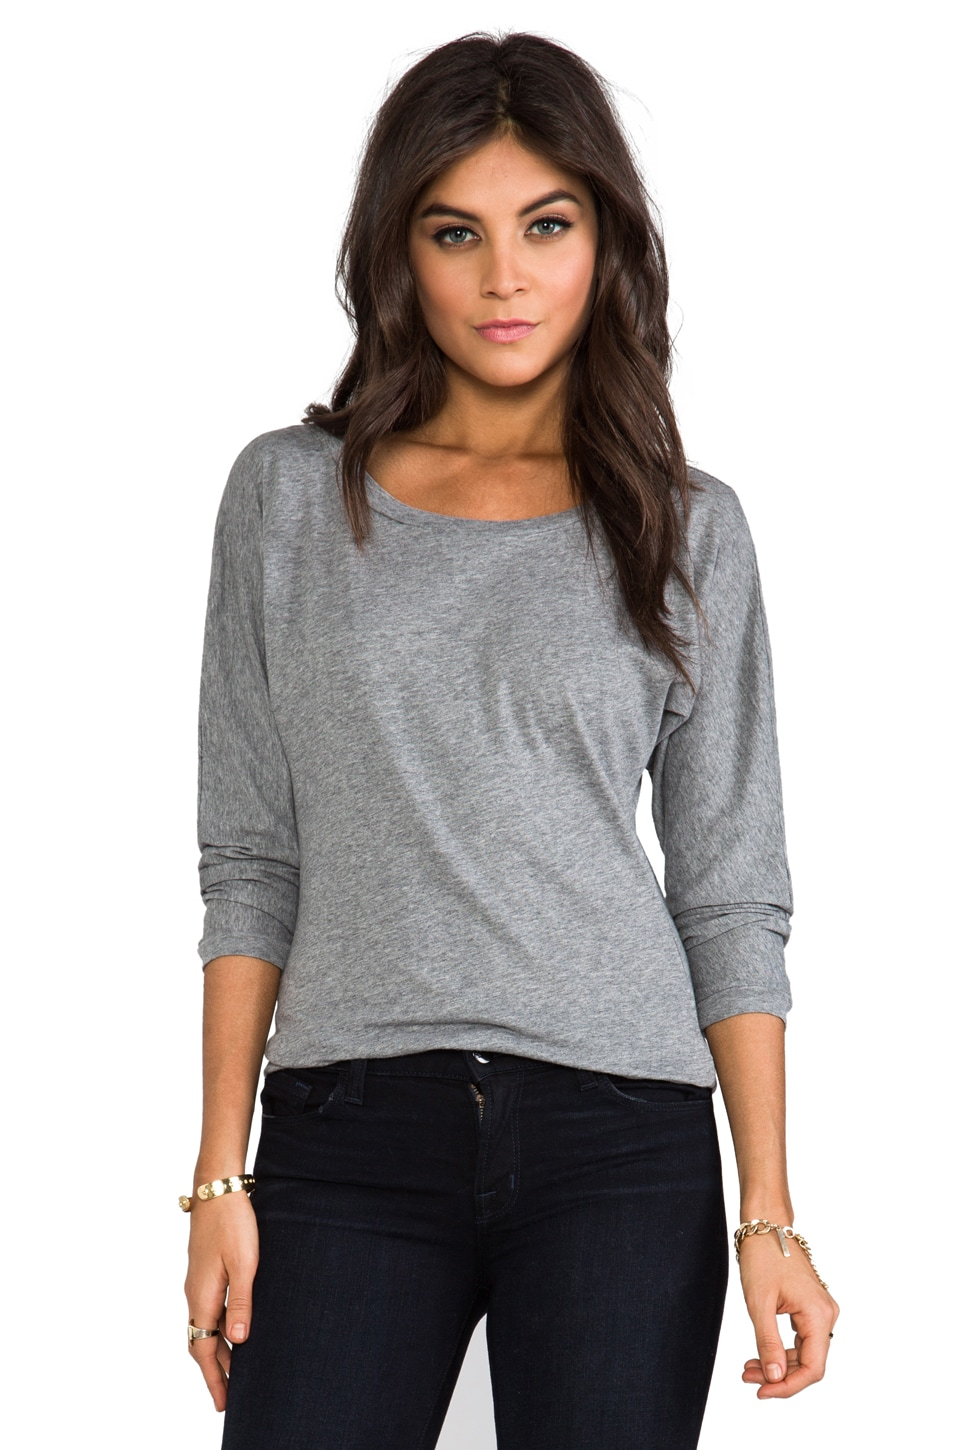 Bobi Light Weight Jersey Boatneck Top in Thunder